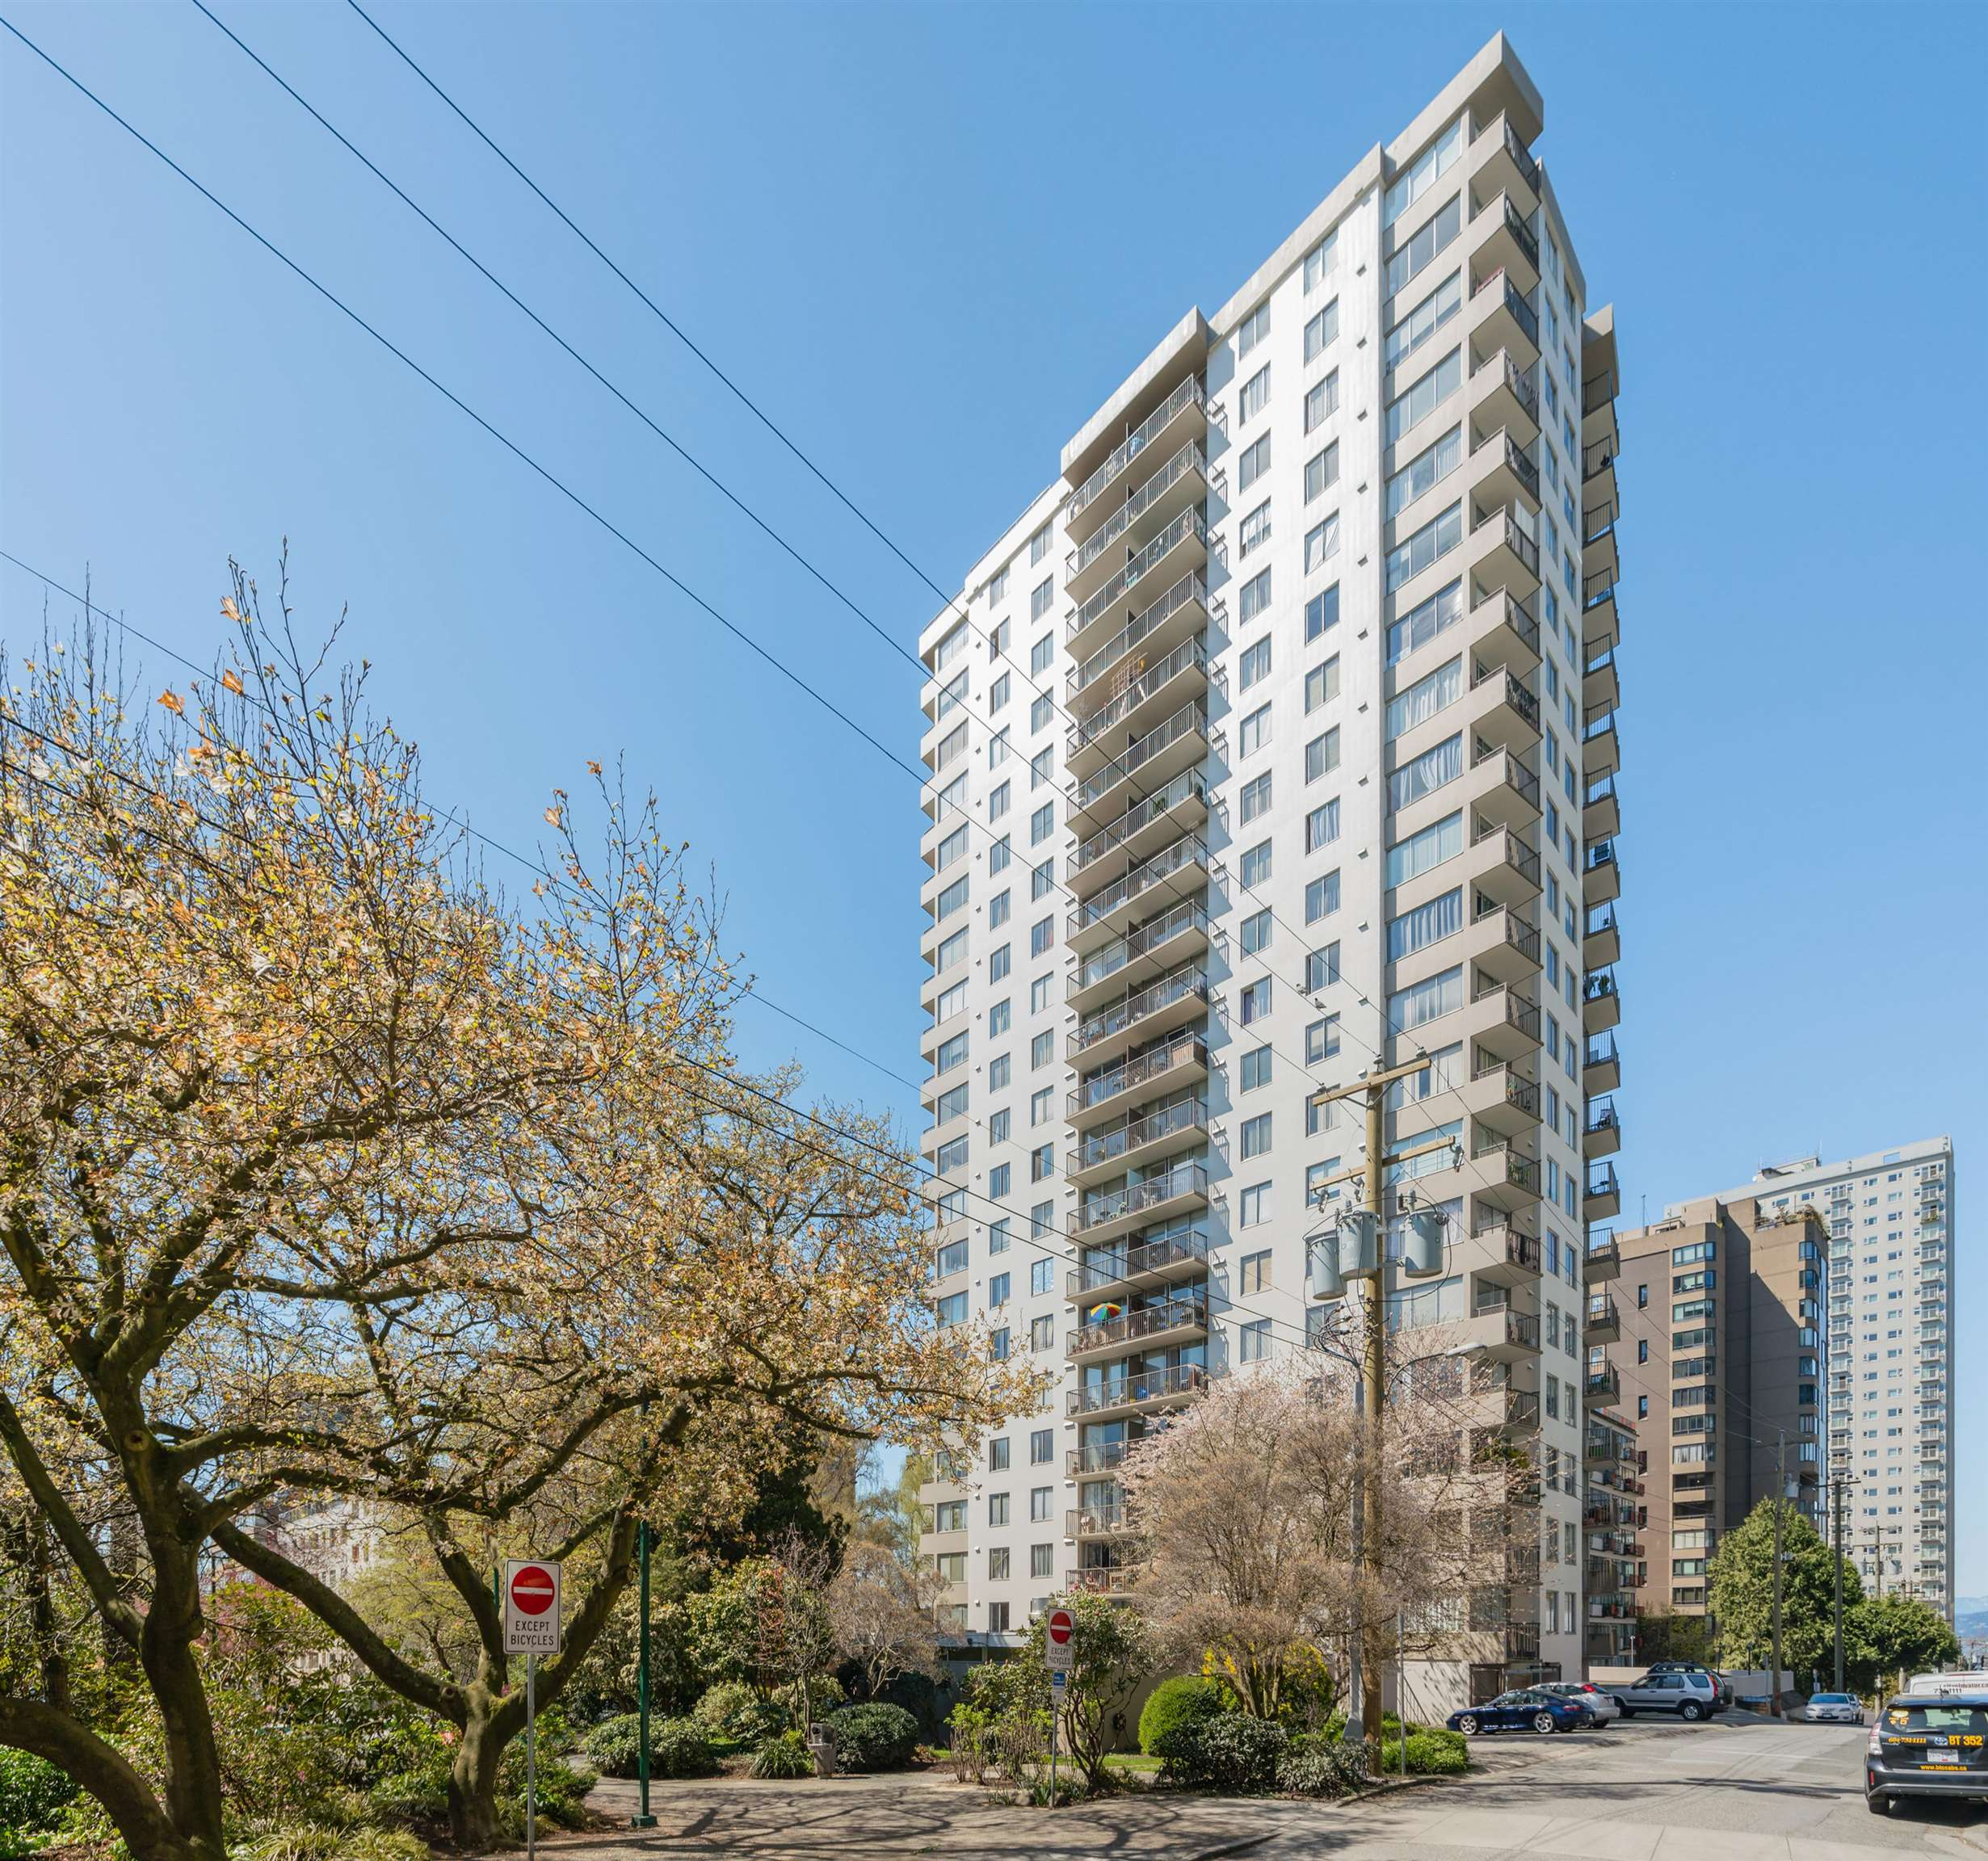 806 1251 CARDERO STREET - West End VW Apartment/Condo for sale, 1 Bedroom (R2625738) - #31